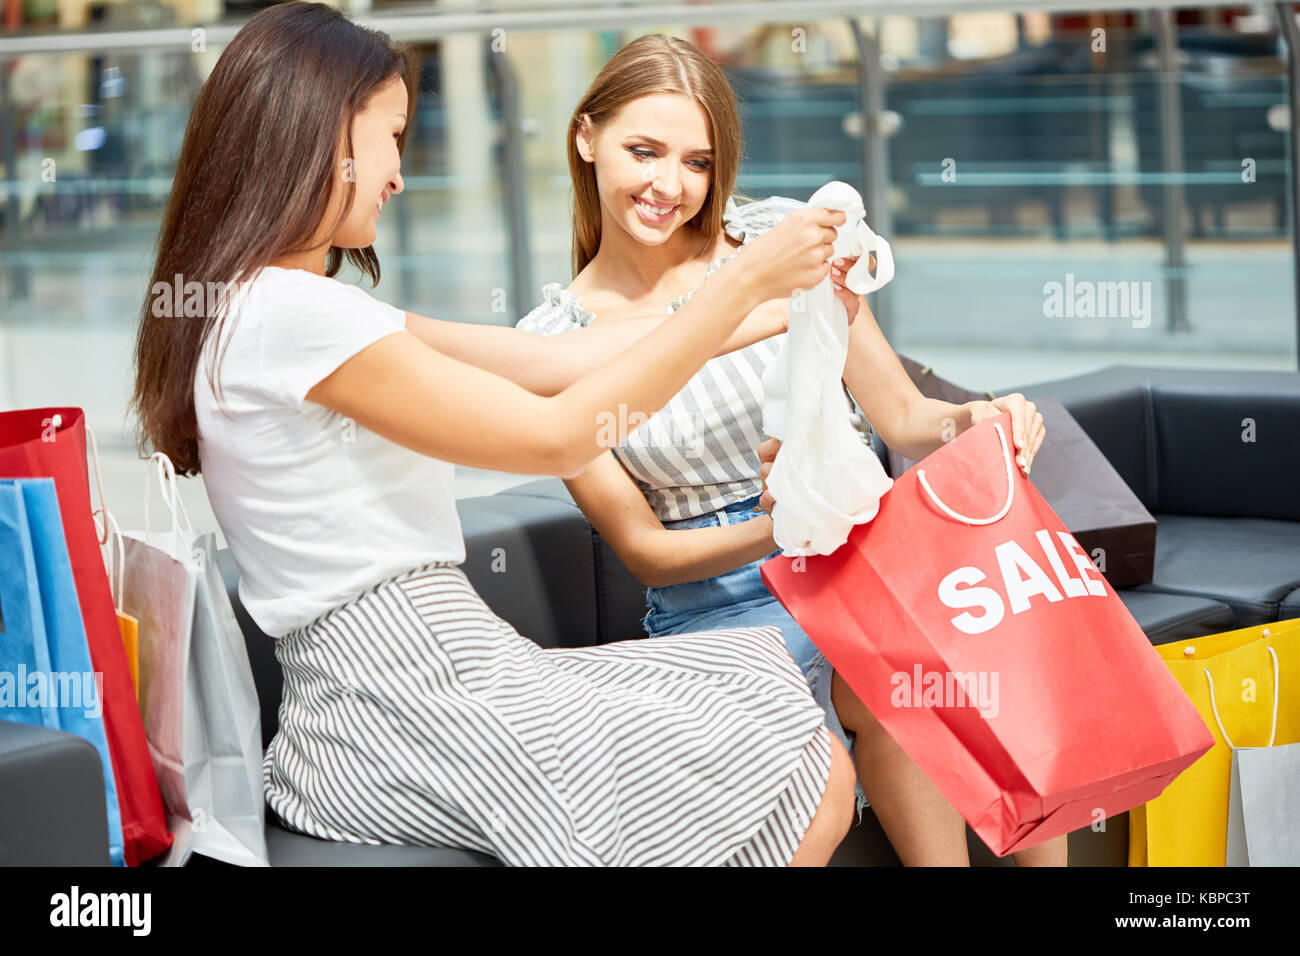 Portrait of two happy women in shopping mall, looking at clothes bought on SALE, holding red paper bags - Stock Image